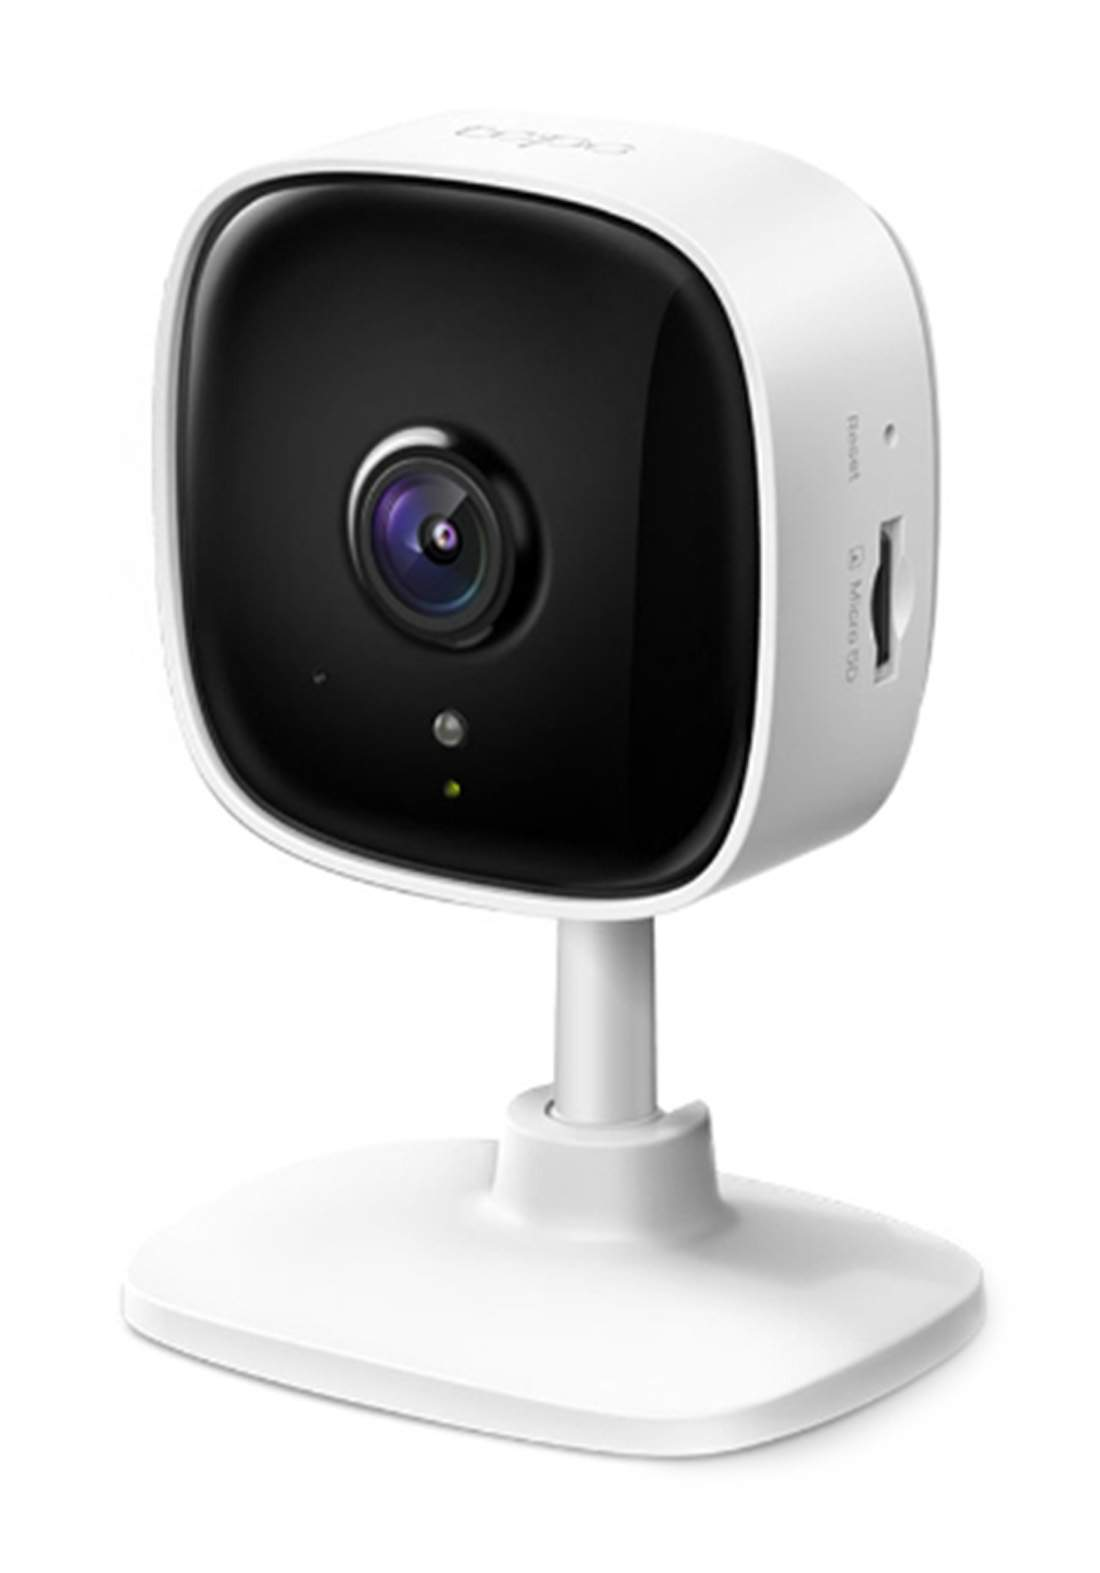 Tp-Link  Tapo C100 Home Security Wi-Fi Camera  - White  كاميرا مراقبة